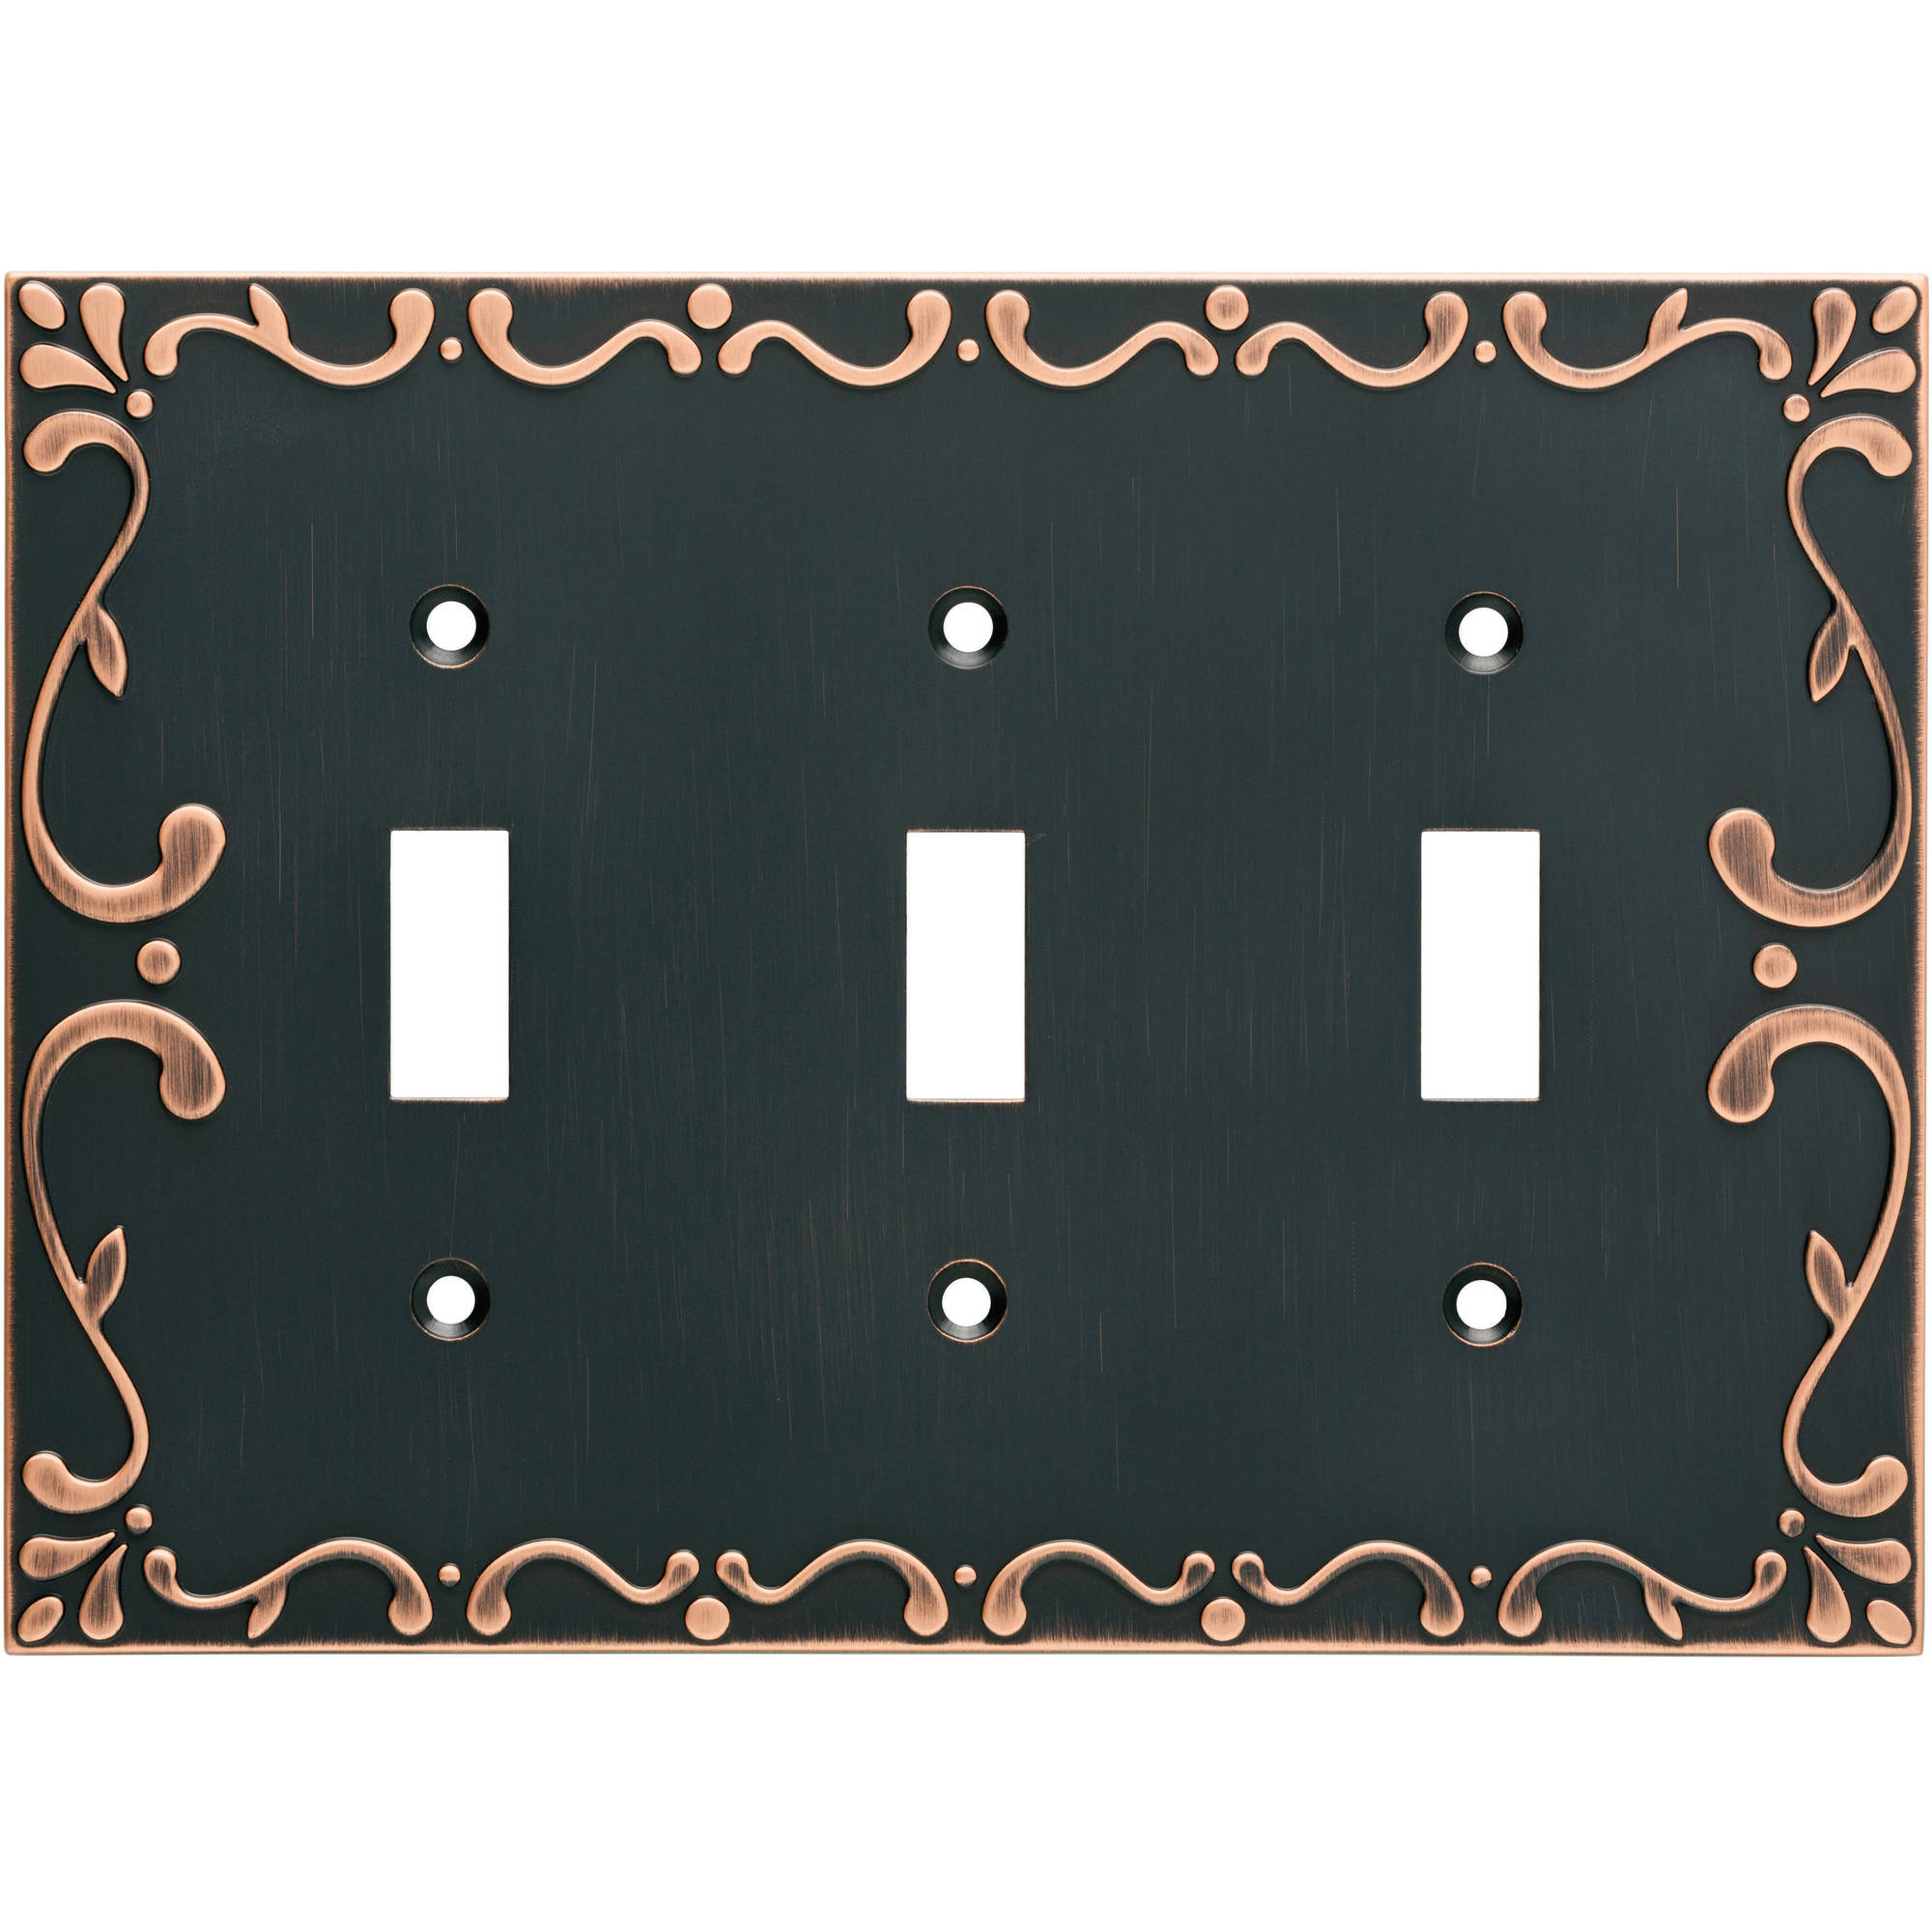 Franklin Brass Classic Lace Triple Switch Wall Plate in Bronze with Copper Highlights